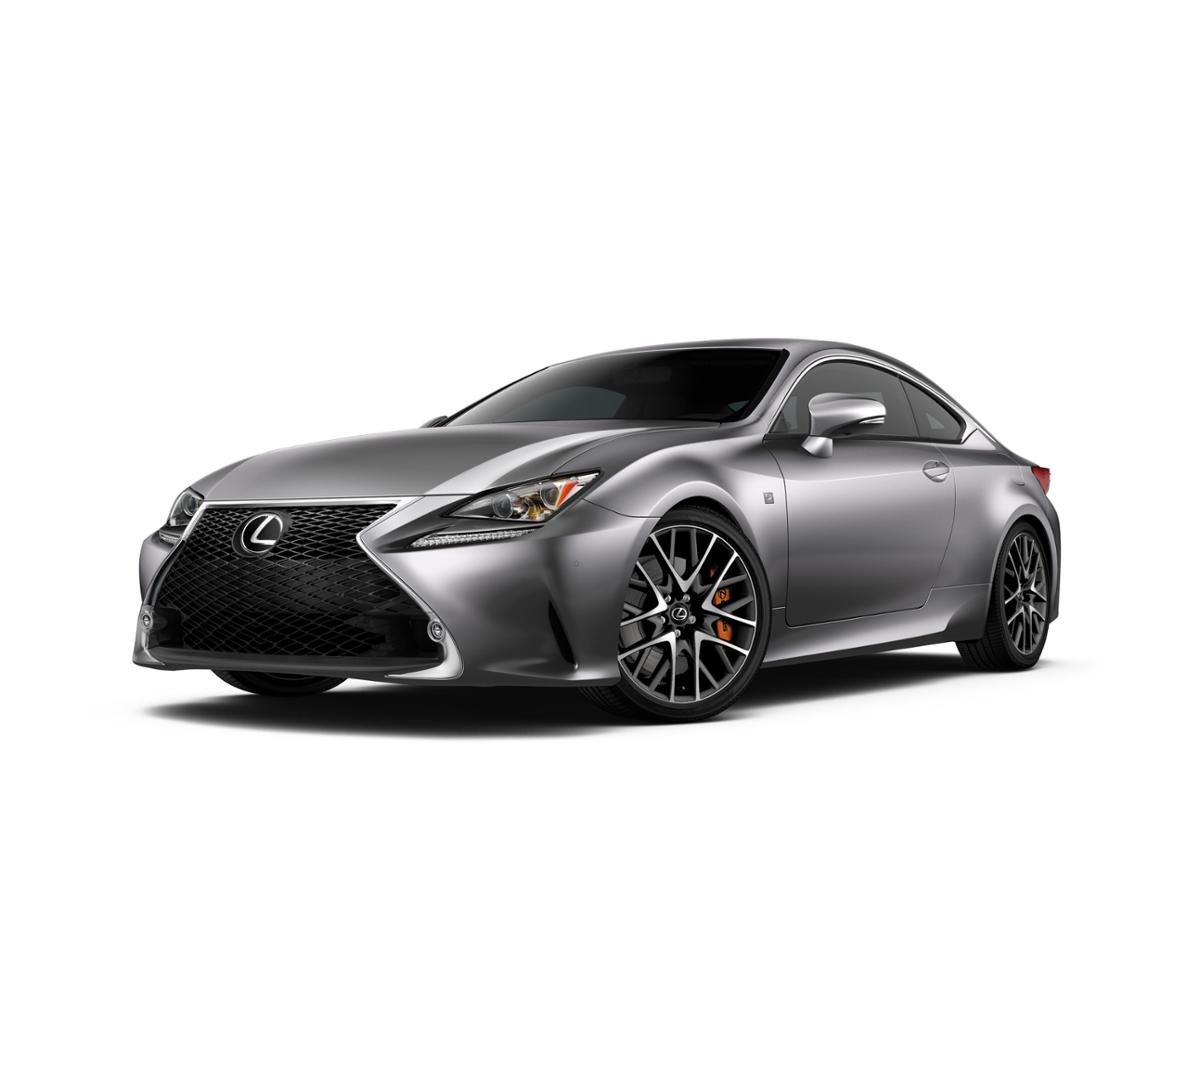 2017 Lexus RC 350 Vehicle Photo in Appleton, WI 54913